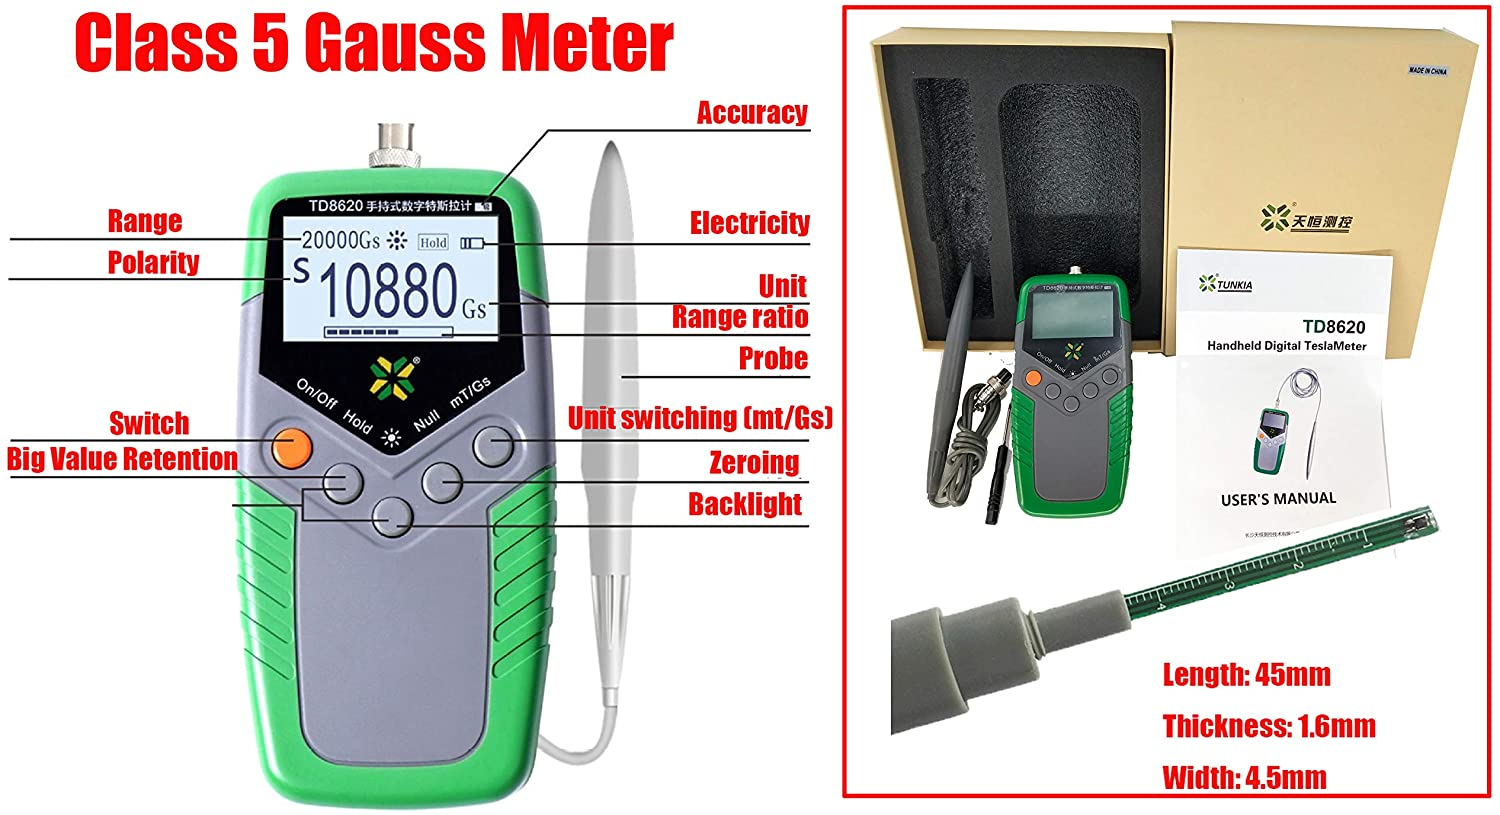 HFBTE TD8620 5% Accuracy Gauss Meter Permanent Magnet Tesla Meter Gaussmeter with mT/G Unit Switch Display Surface Magnetic Field Tester